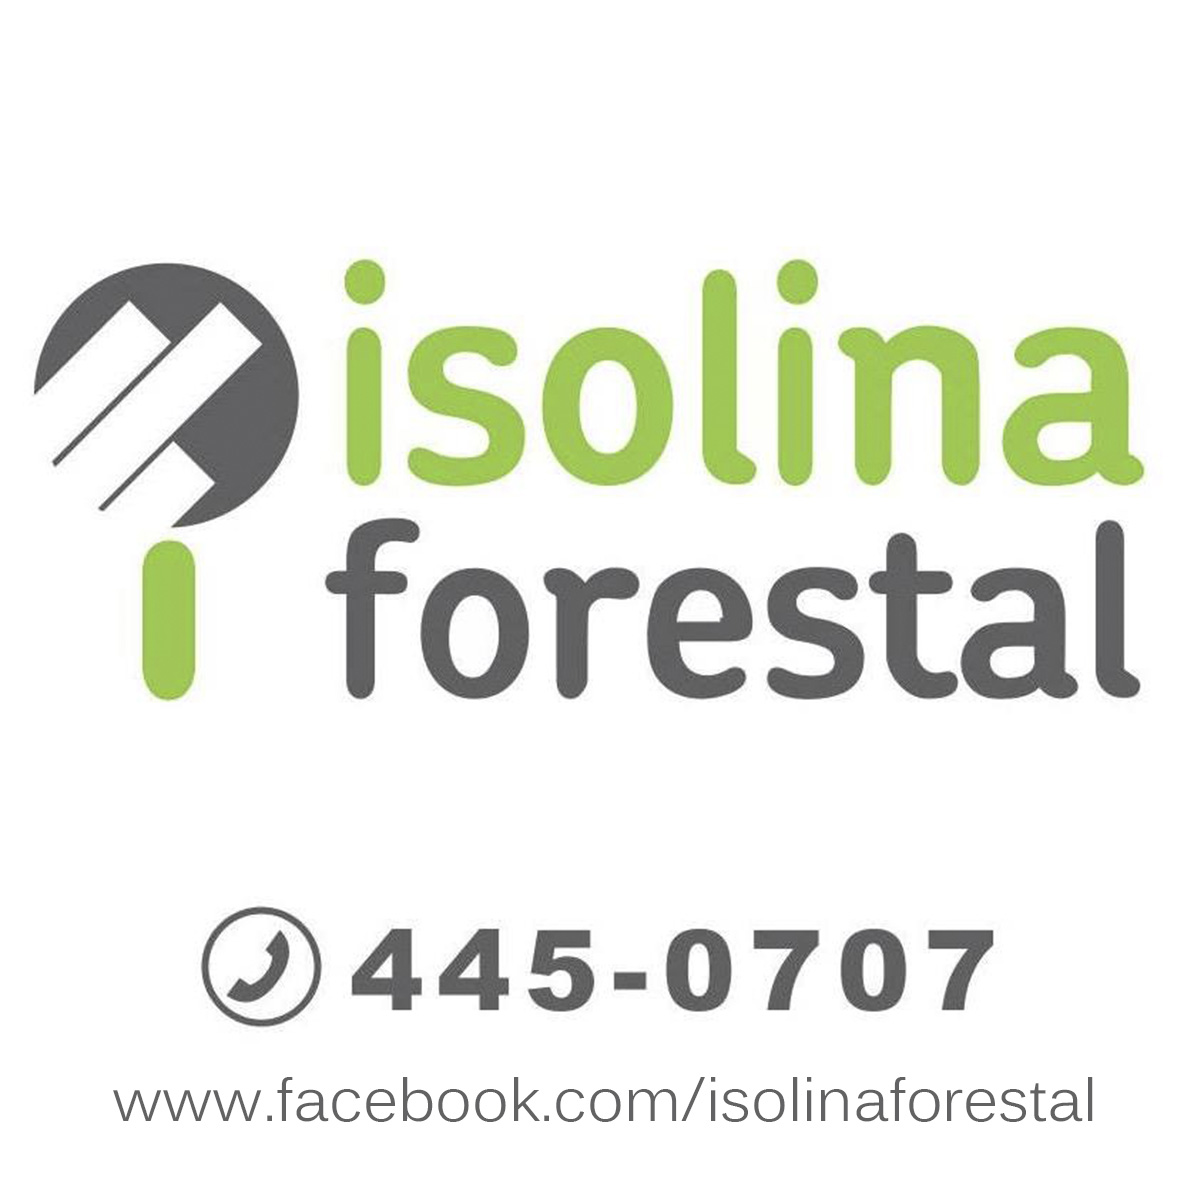 Isolina  Forestal